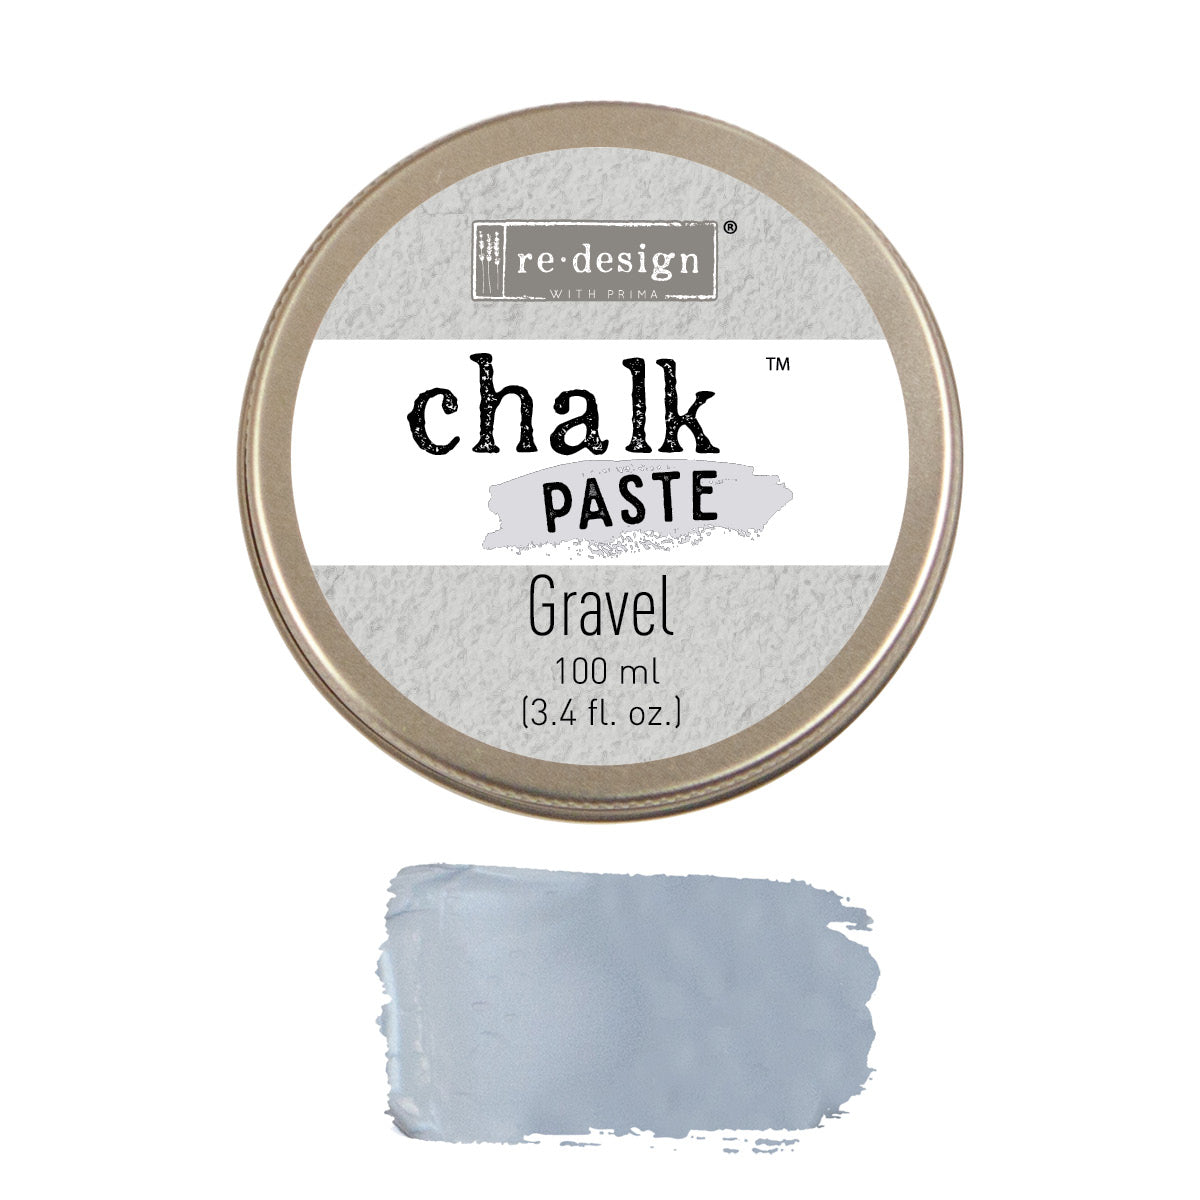 Redesign with Prima - Chalk Paste - Gravel